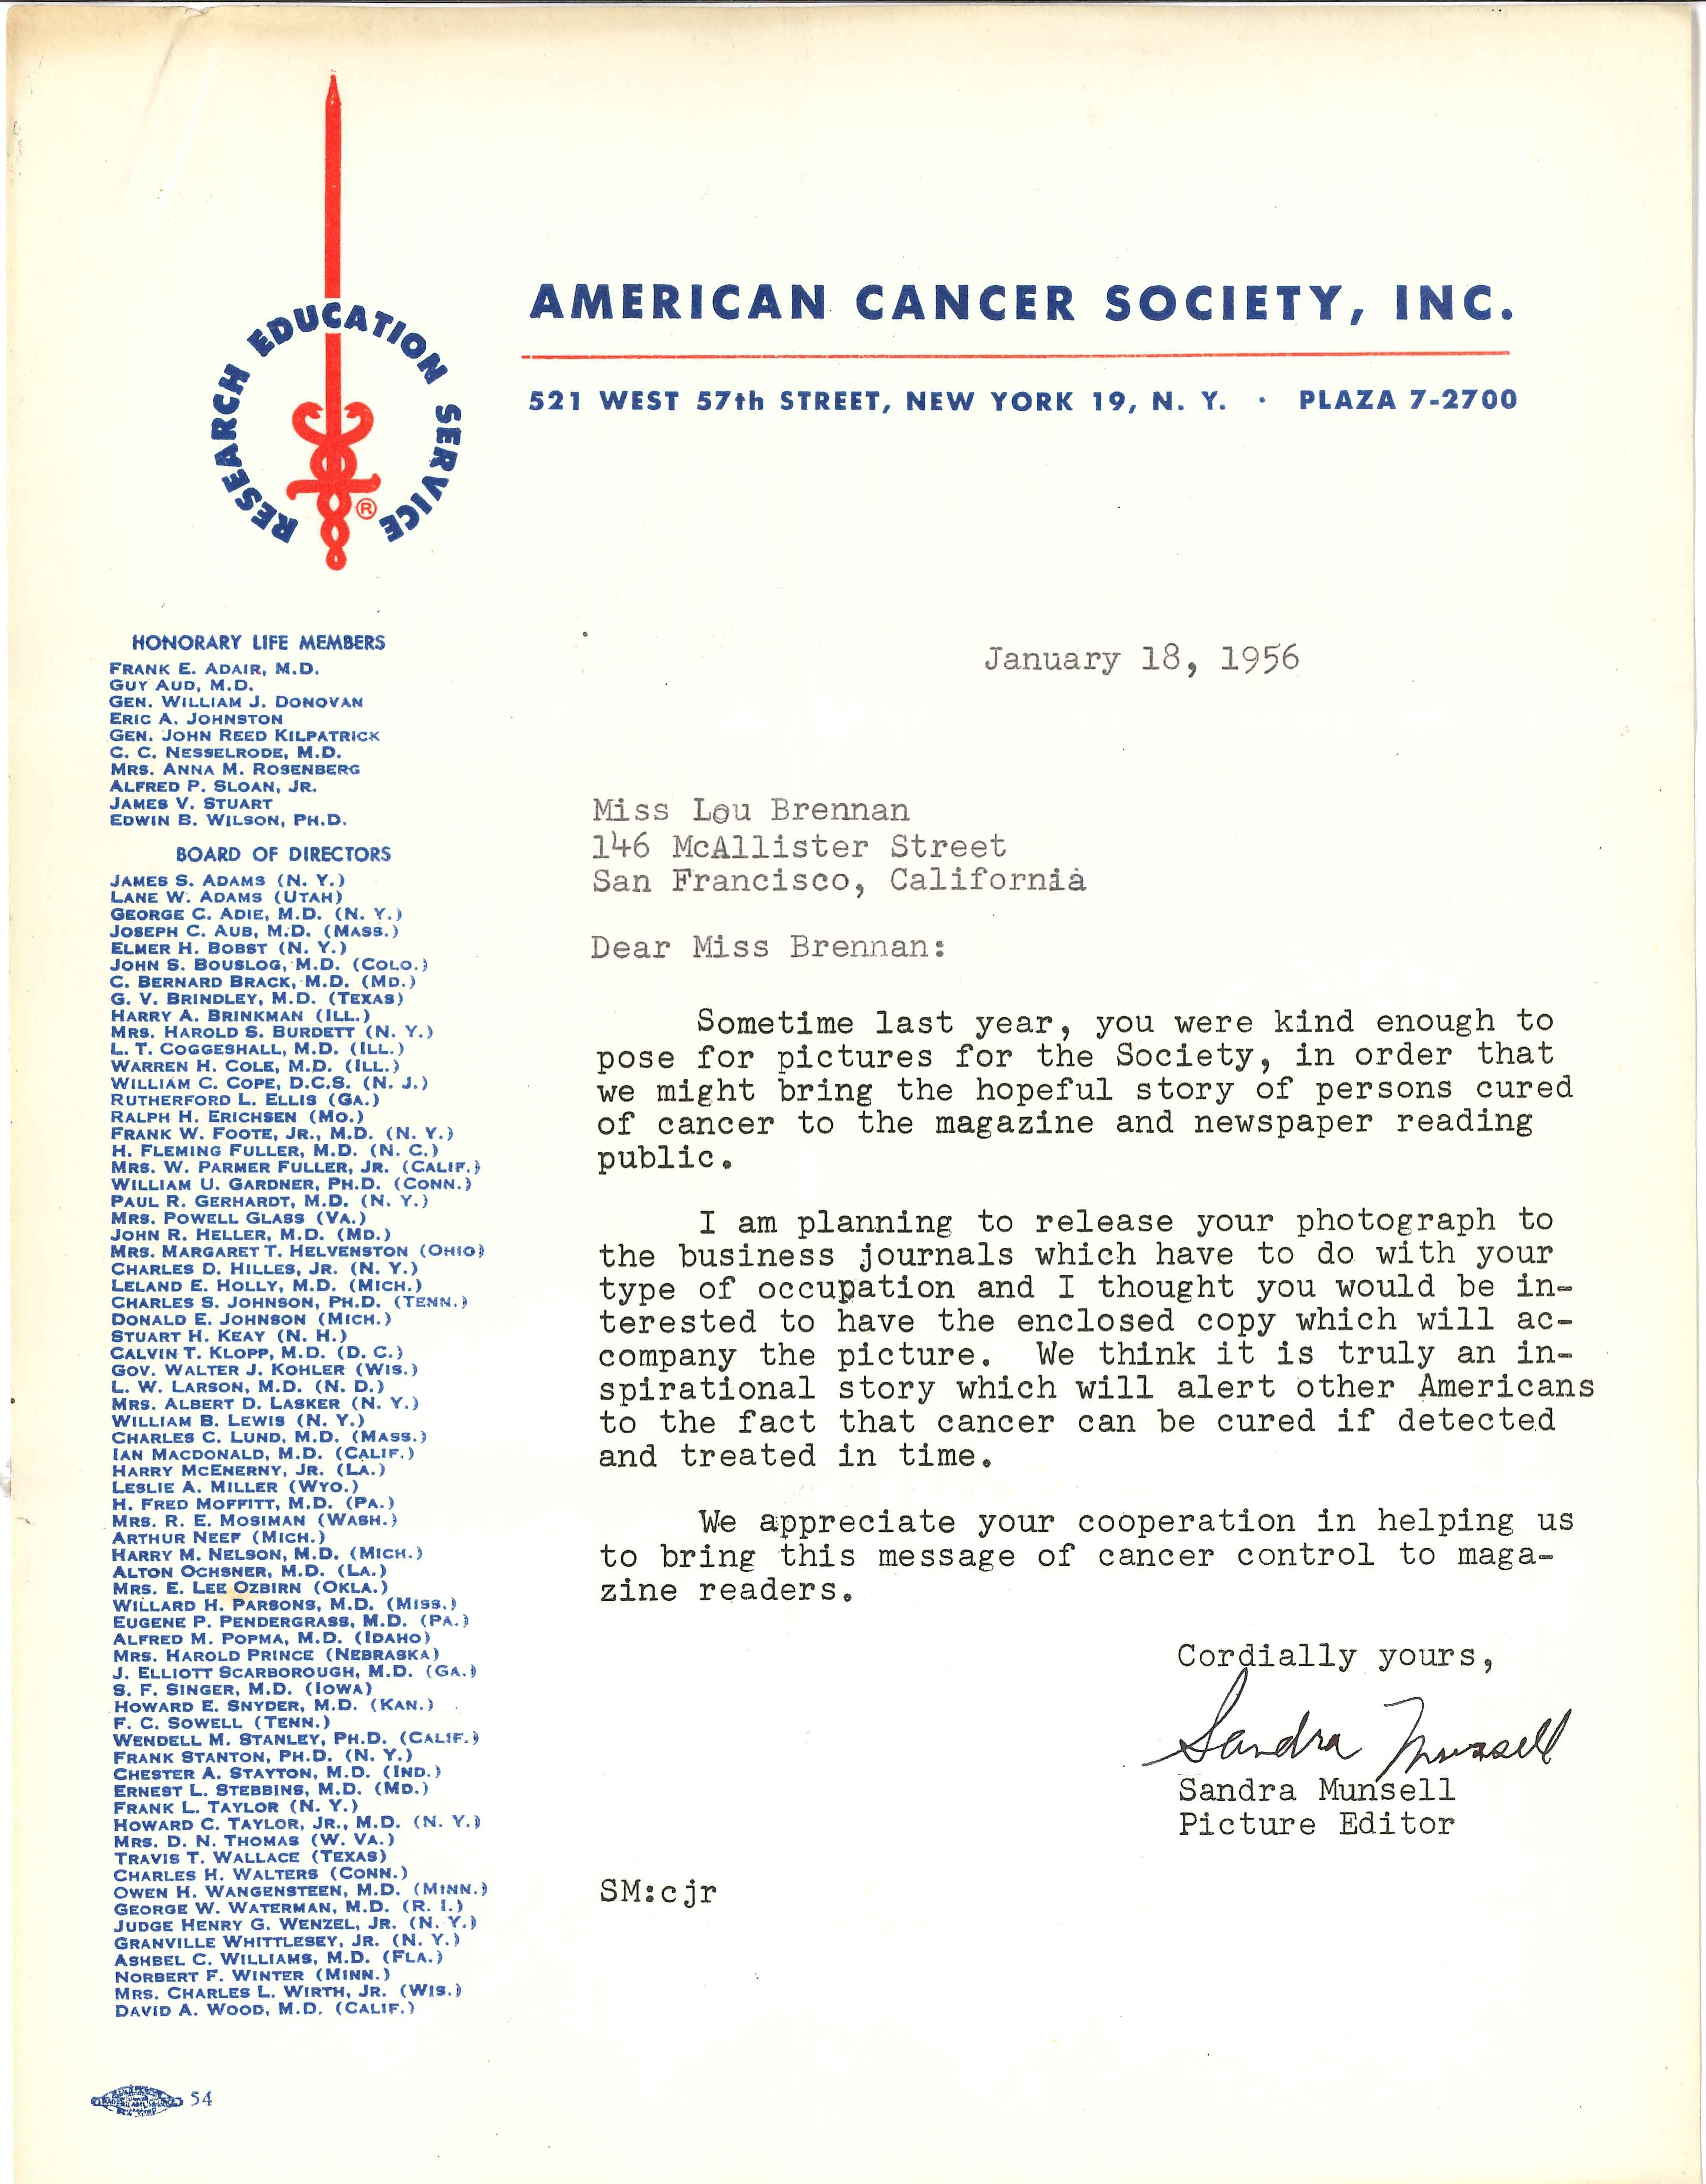 A beautiful letter on official American Cancer Society letterhead ...